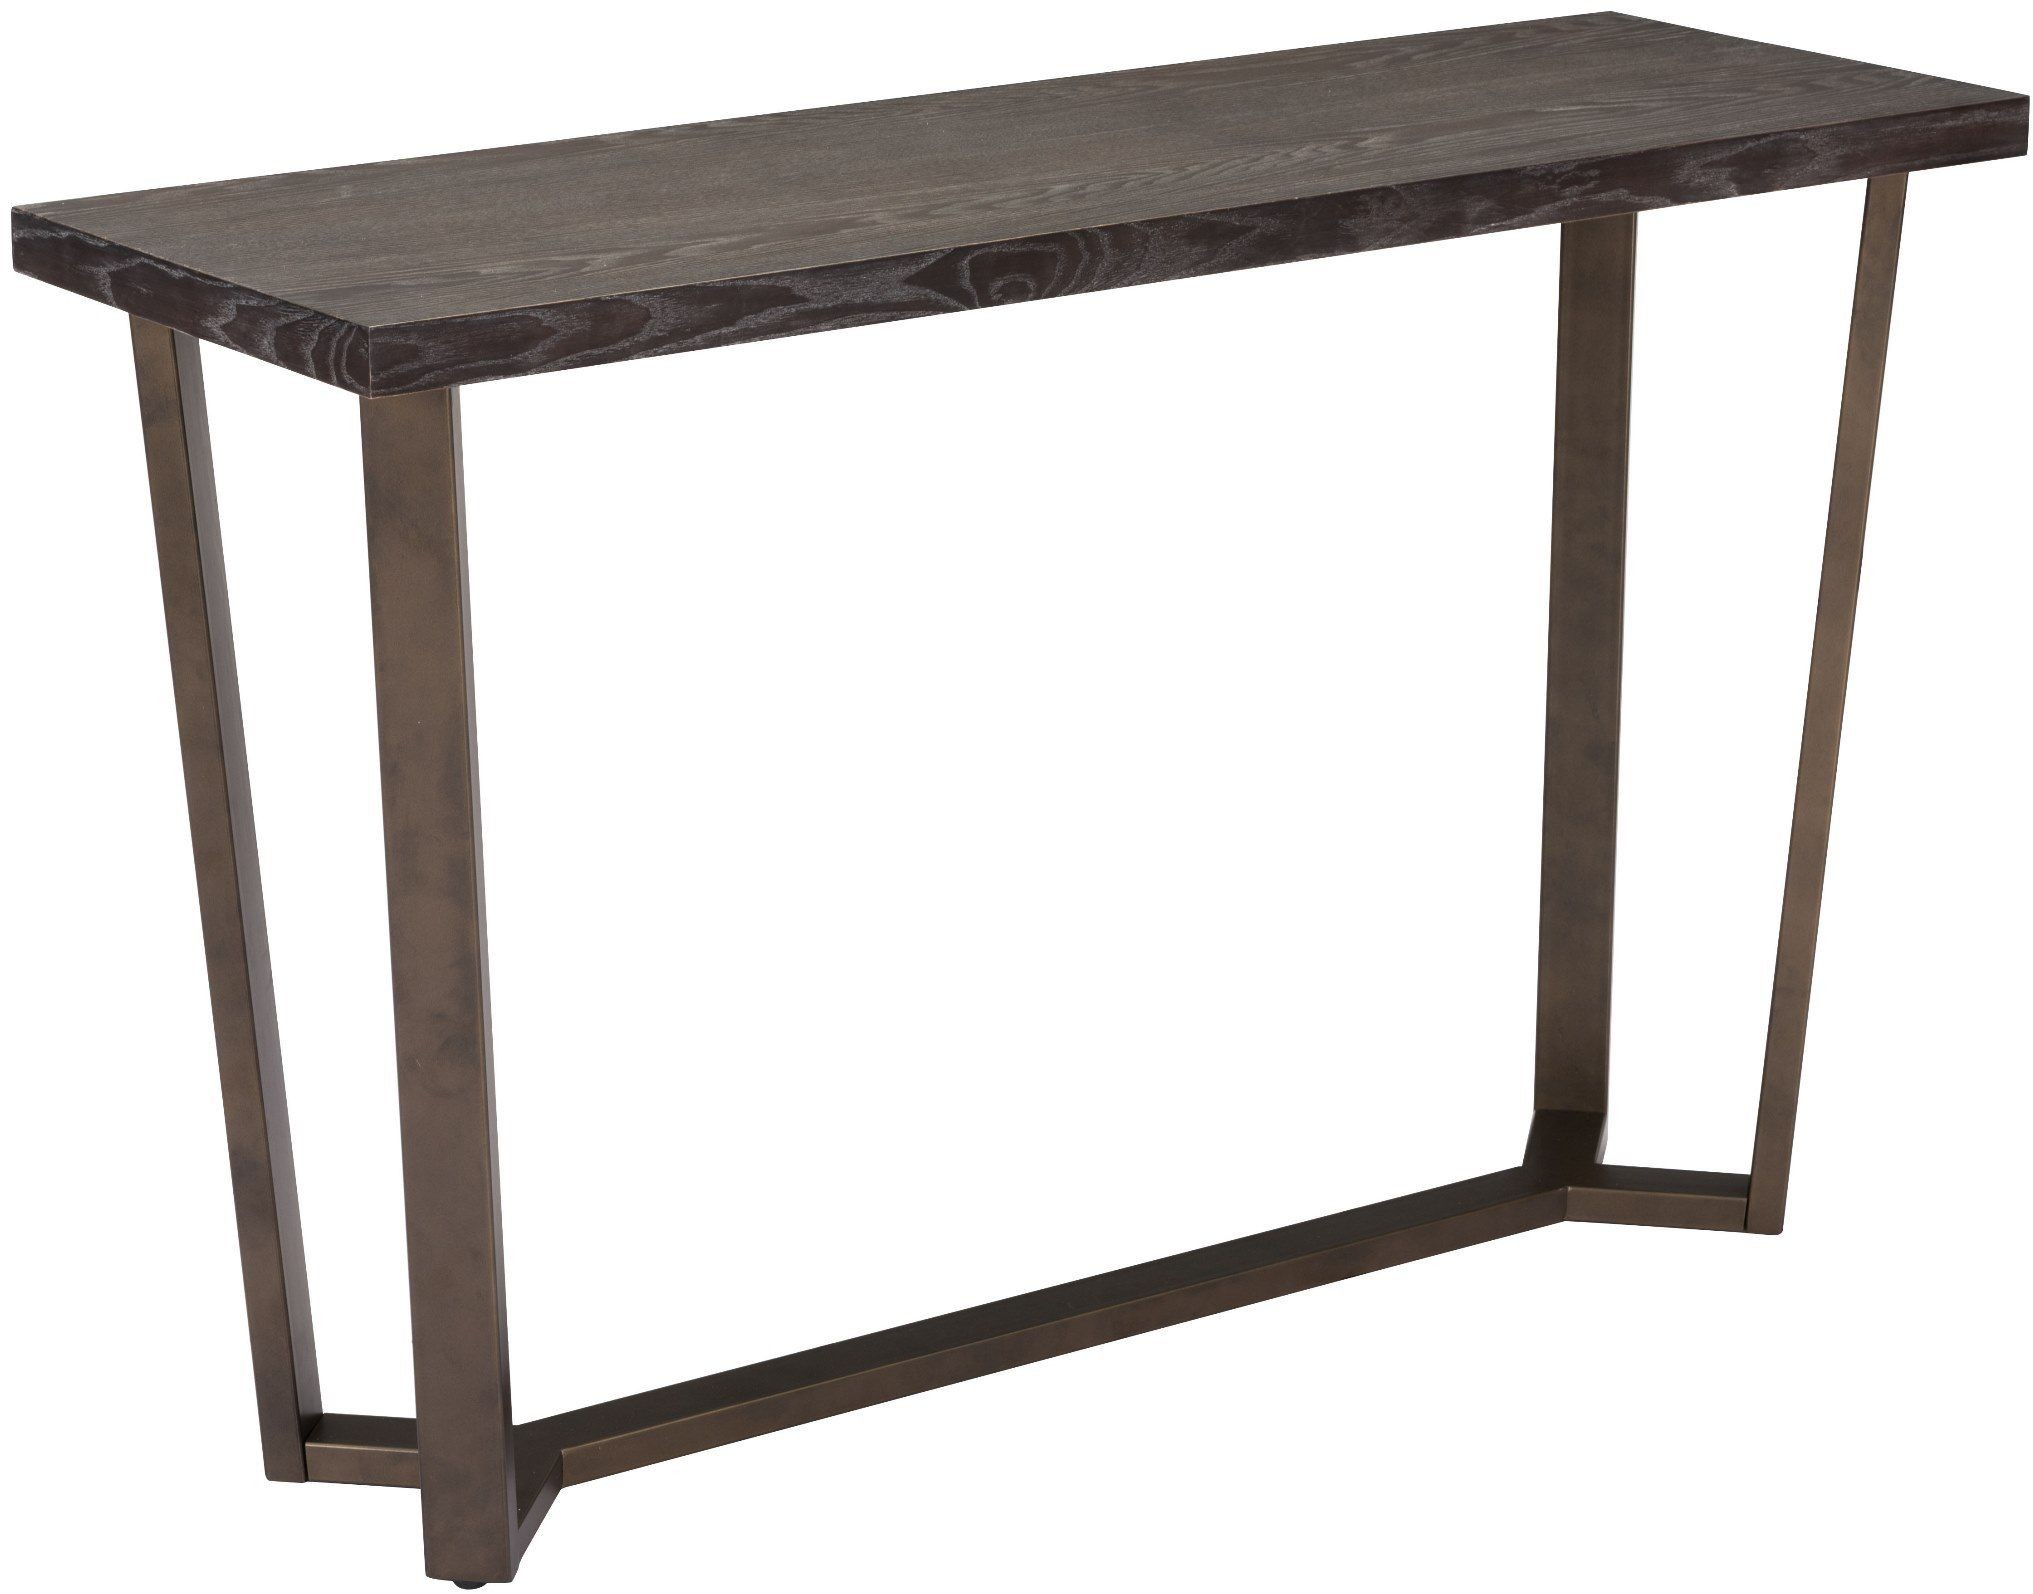 Brooklyn Grey Oak And Antique Brass Steel Console Table From Zuo Coleman Furniture